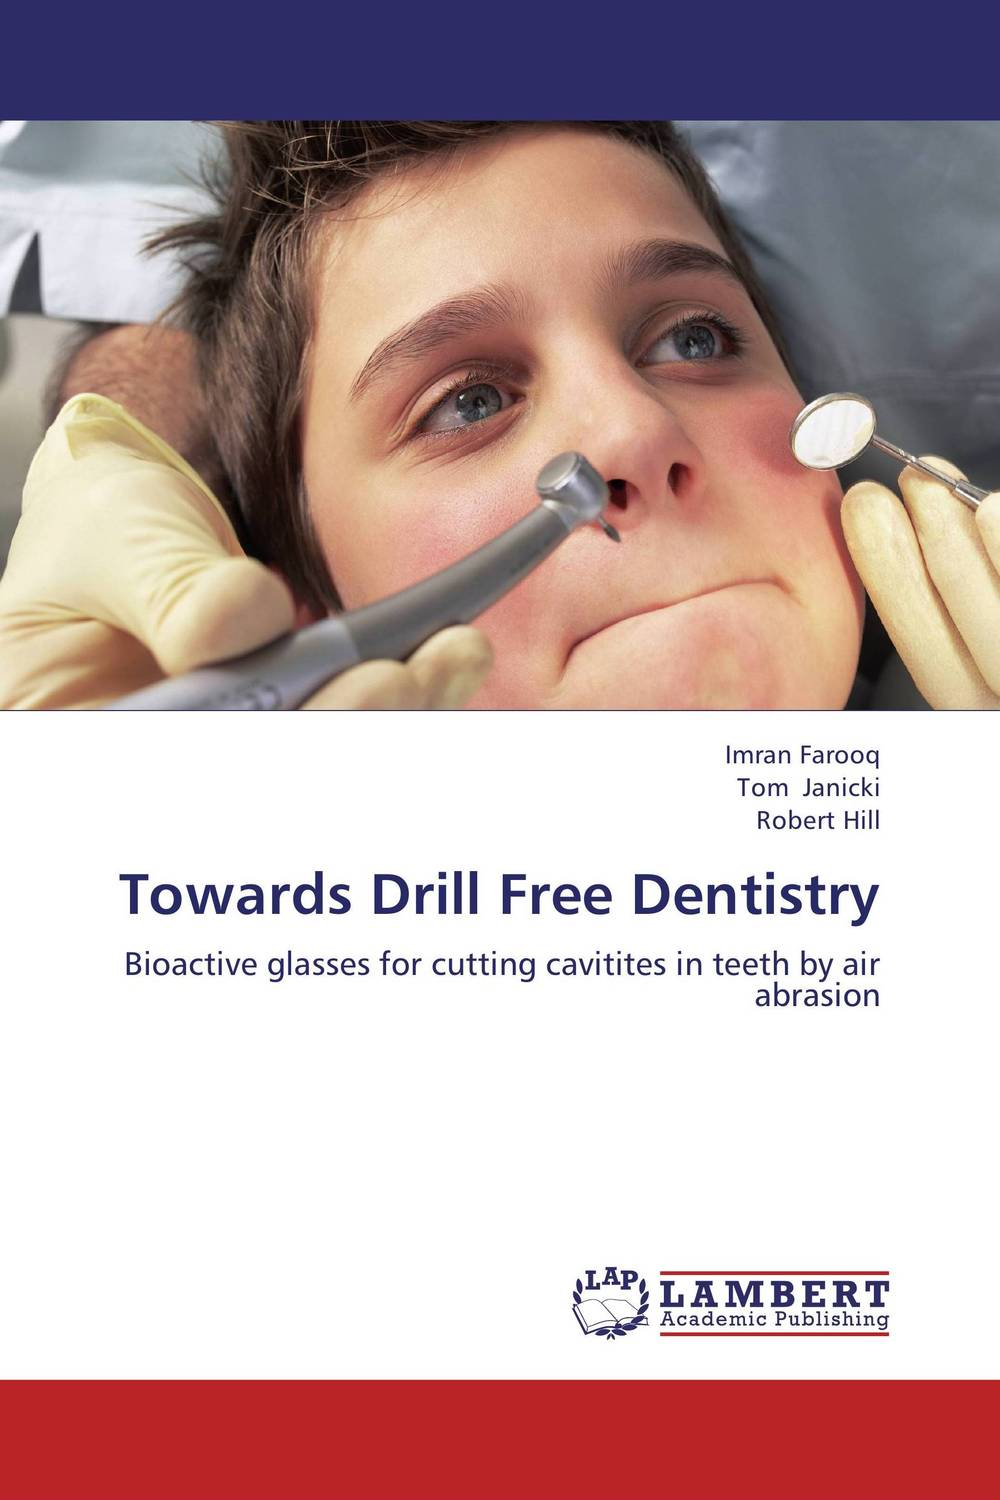 Towards Drill Free Dentistry karanprakash singh ramanpreet kaur bhullar and sumit kochhar forensic dentistry teeth and their secrets